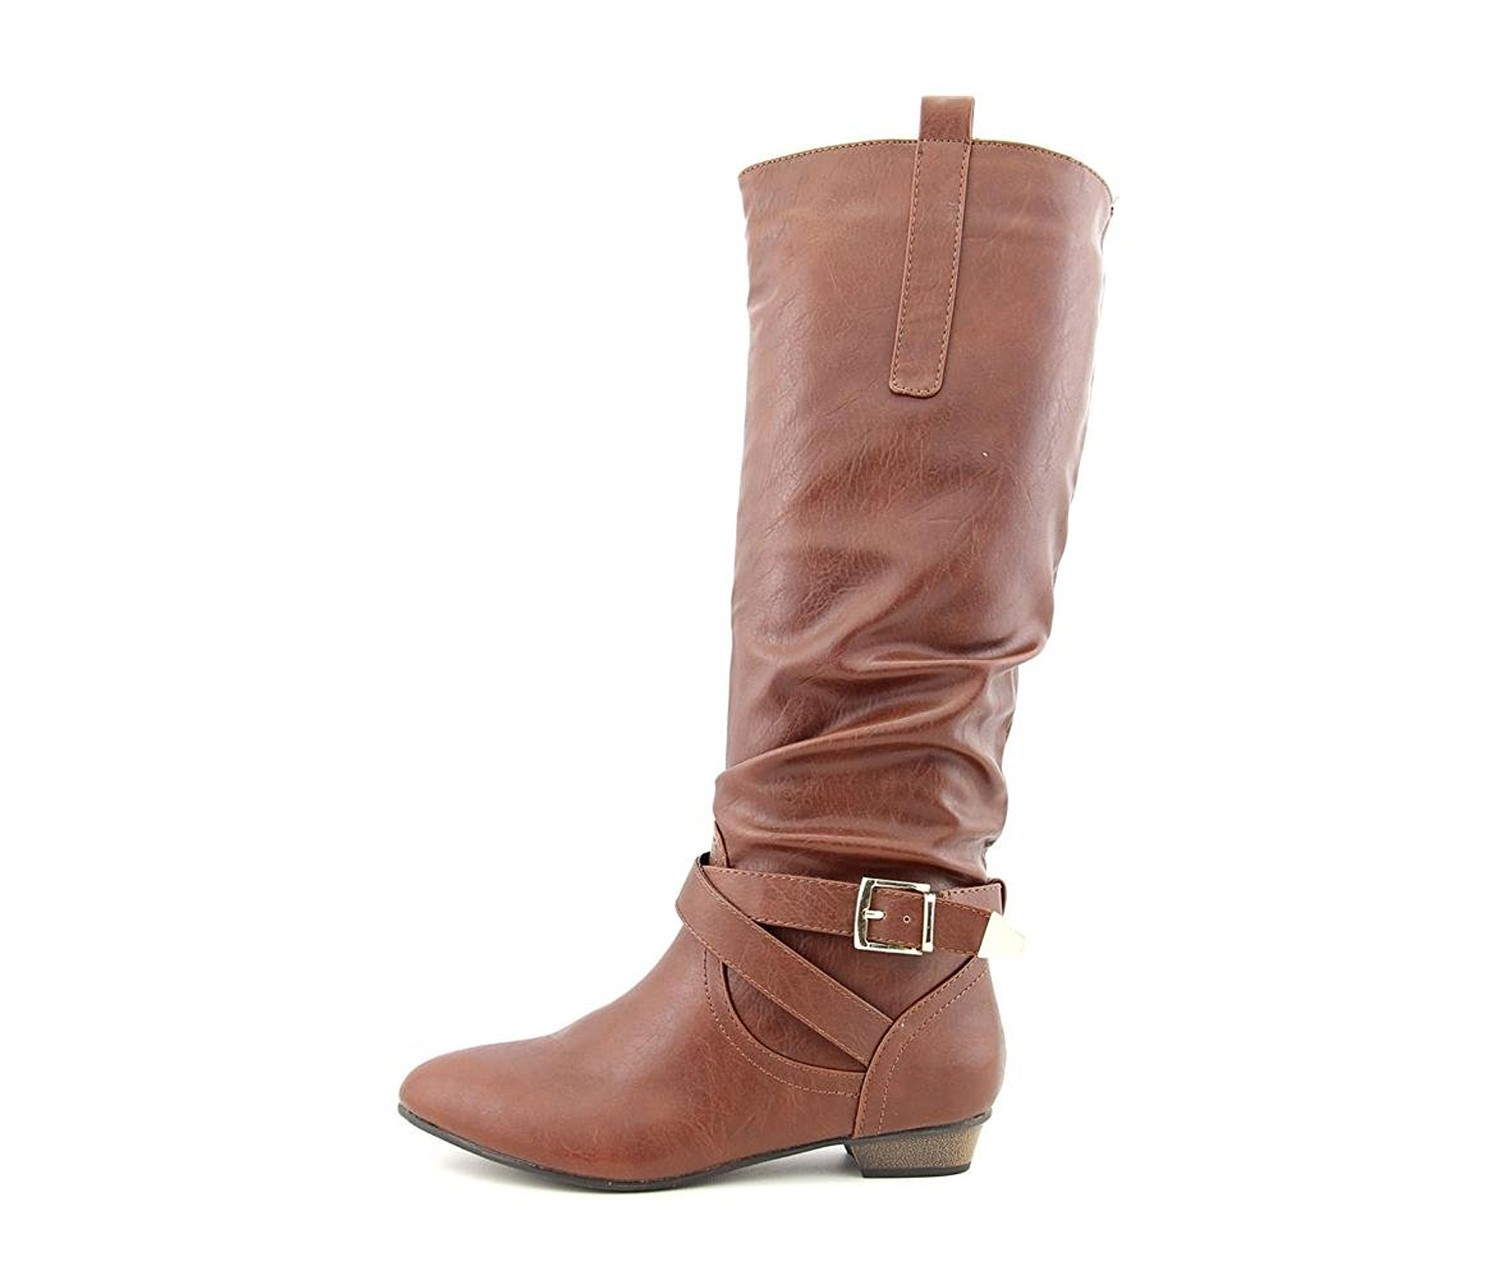 cognac girls Twisted x - makers of comfortable handcrafted footwear we believe in the spirit of the american west our promise is to always build quality footwear focused on comfort and innovation.